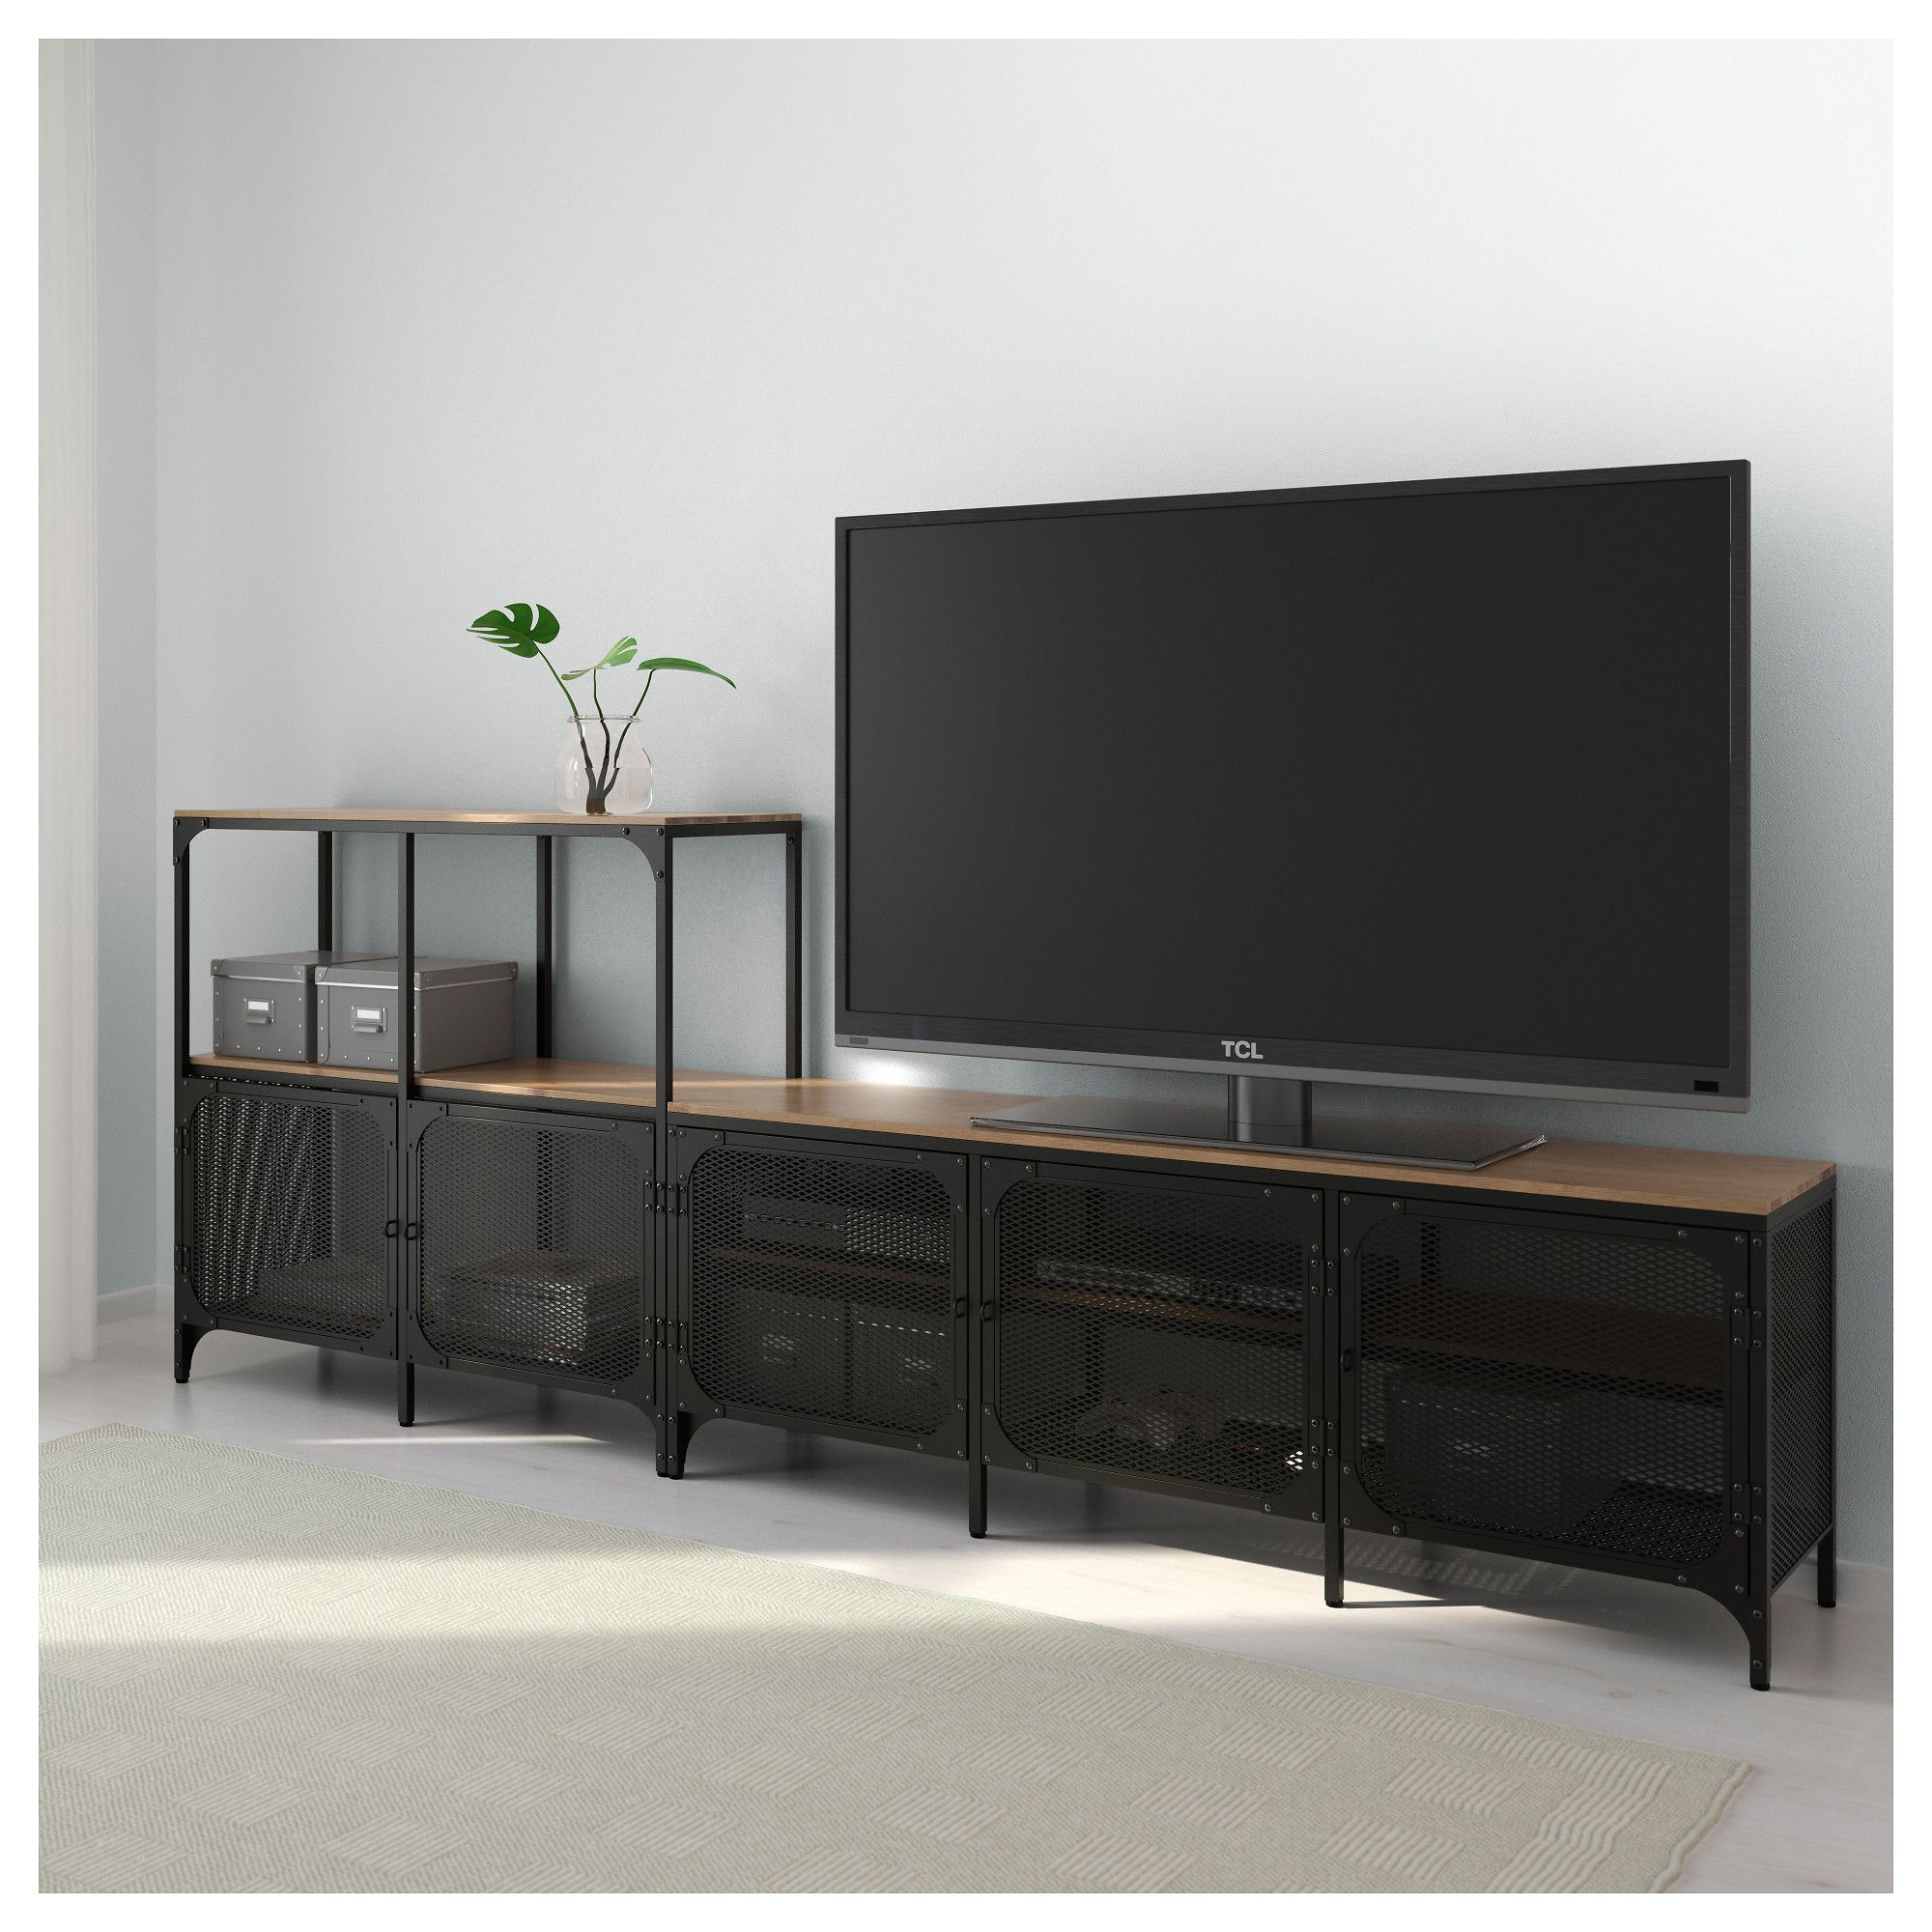 Ikea Tv Bank Schwarz Ikea Fjallbo Black Tv Storage Combination Home Bedroom